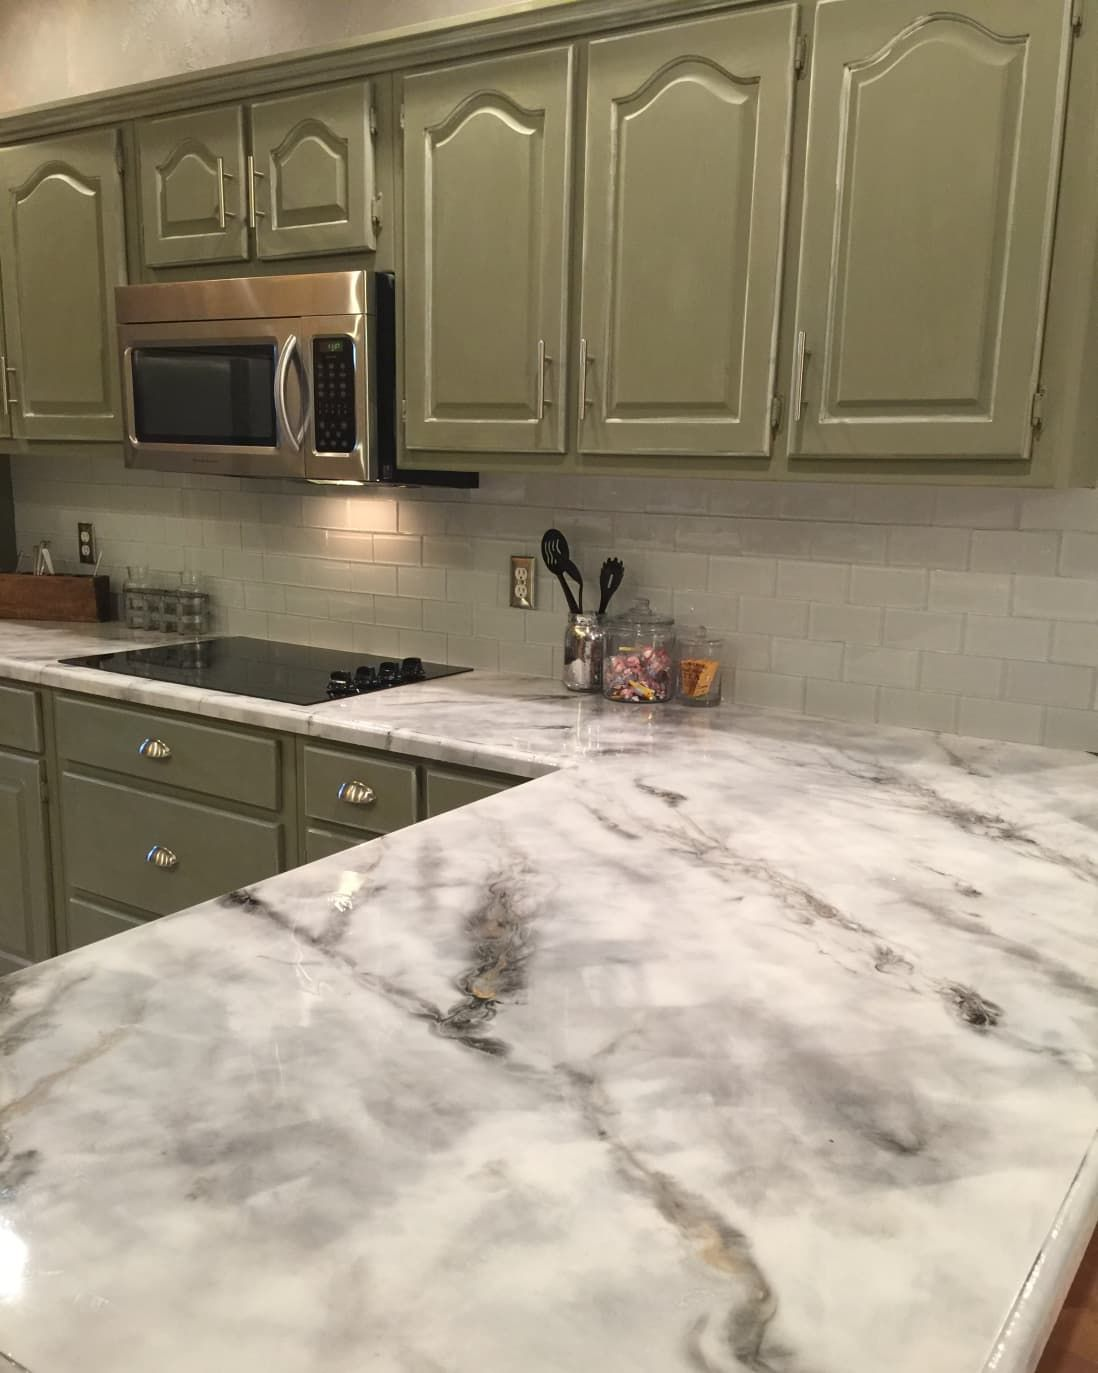 The Easiest Least Expensive Way To Get A Realistic Looking Faux Marble Countertop In 2020 Faux Marble Countertop Kitchen Design Diy Replacing Kitchen Countertops